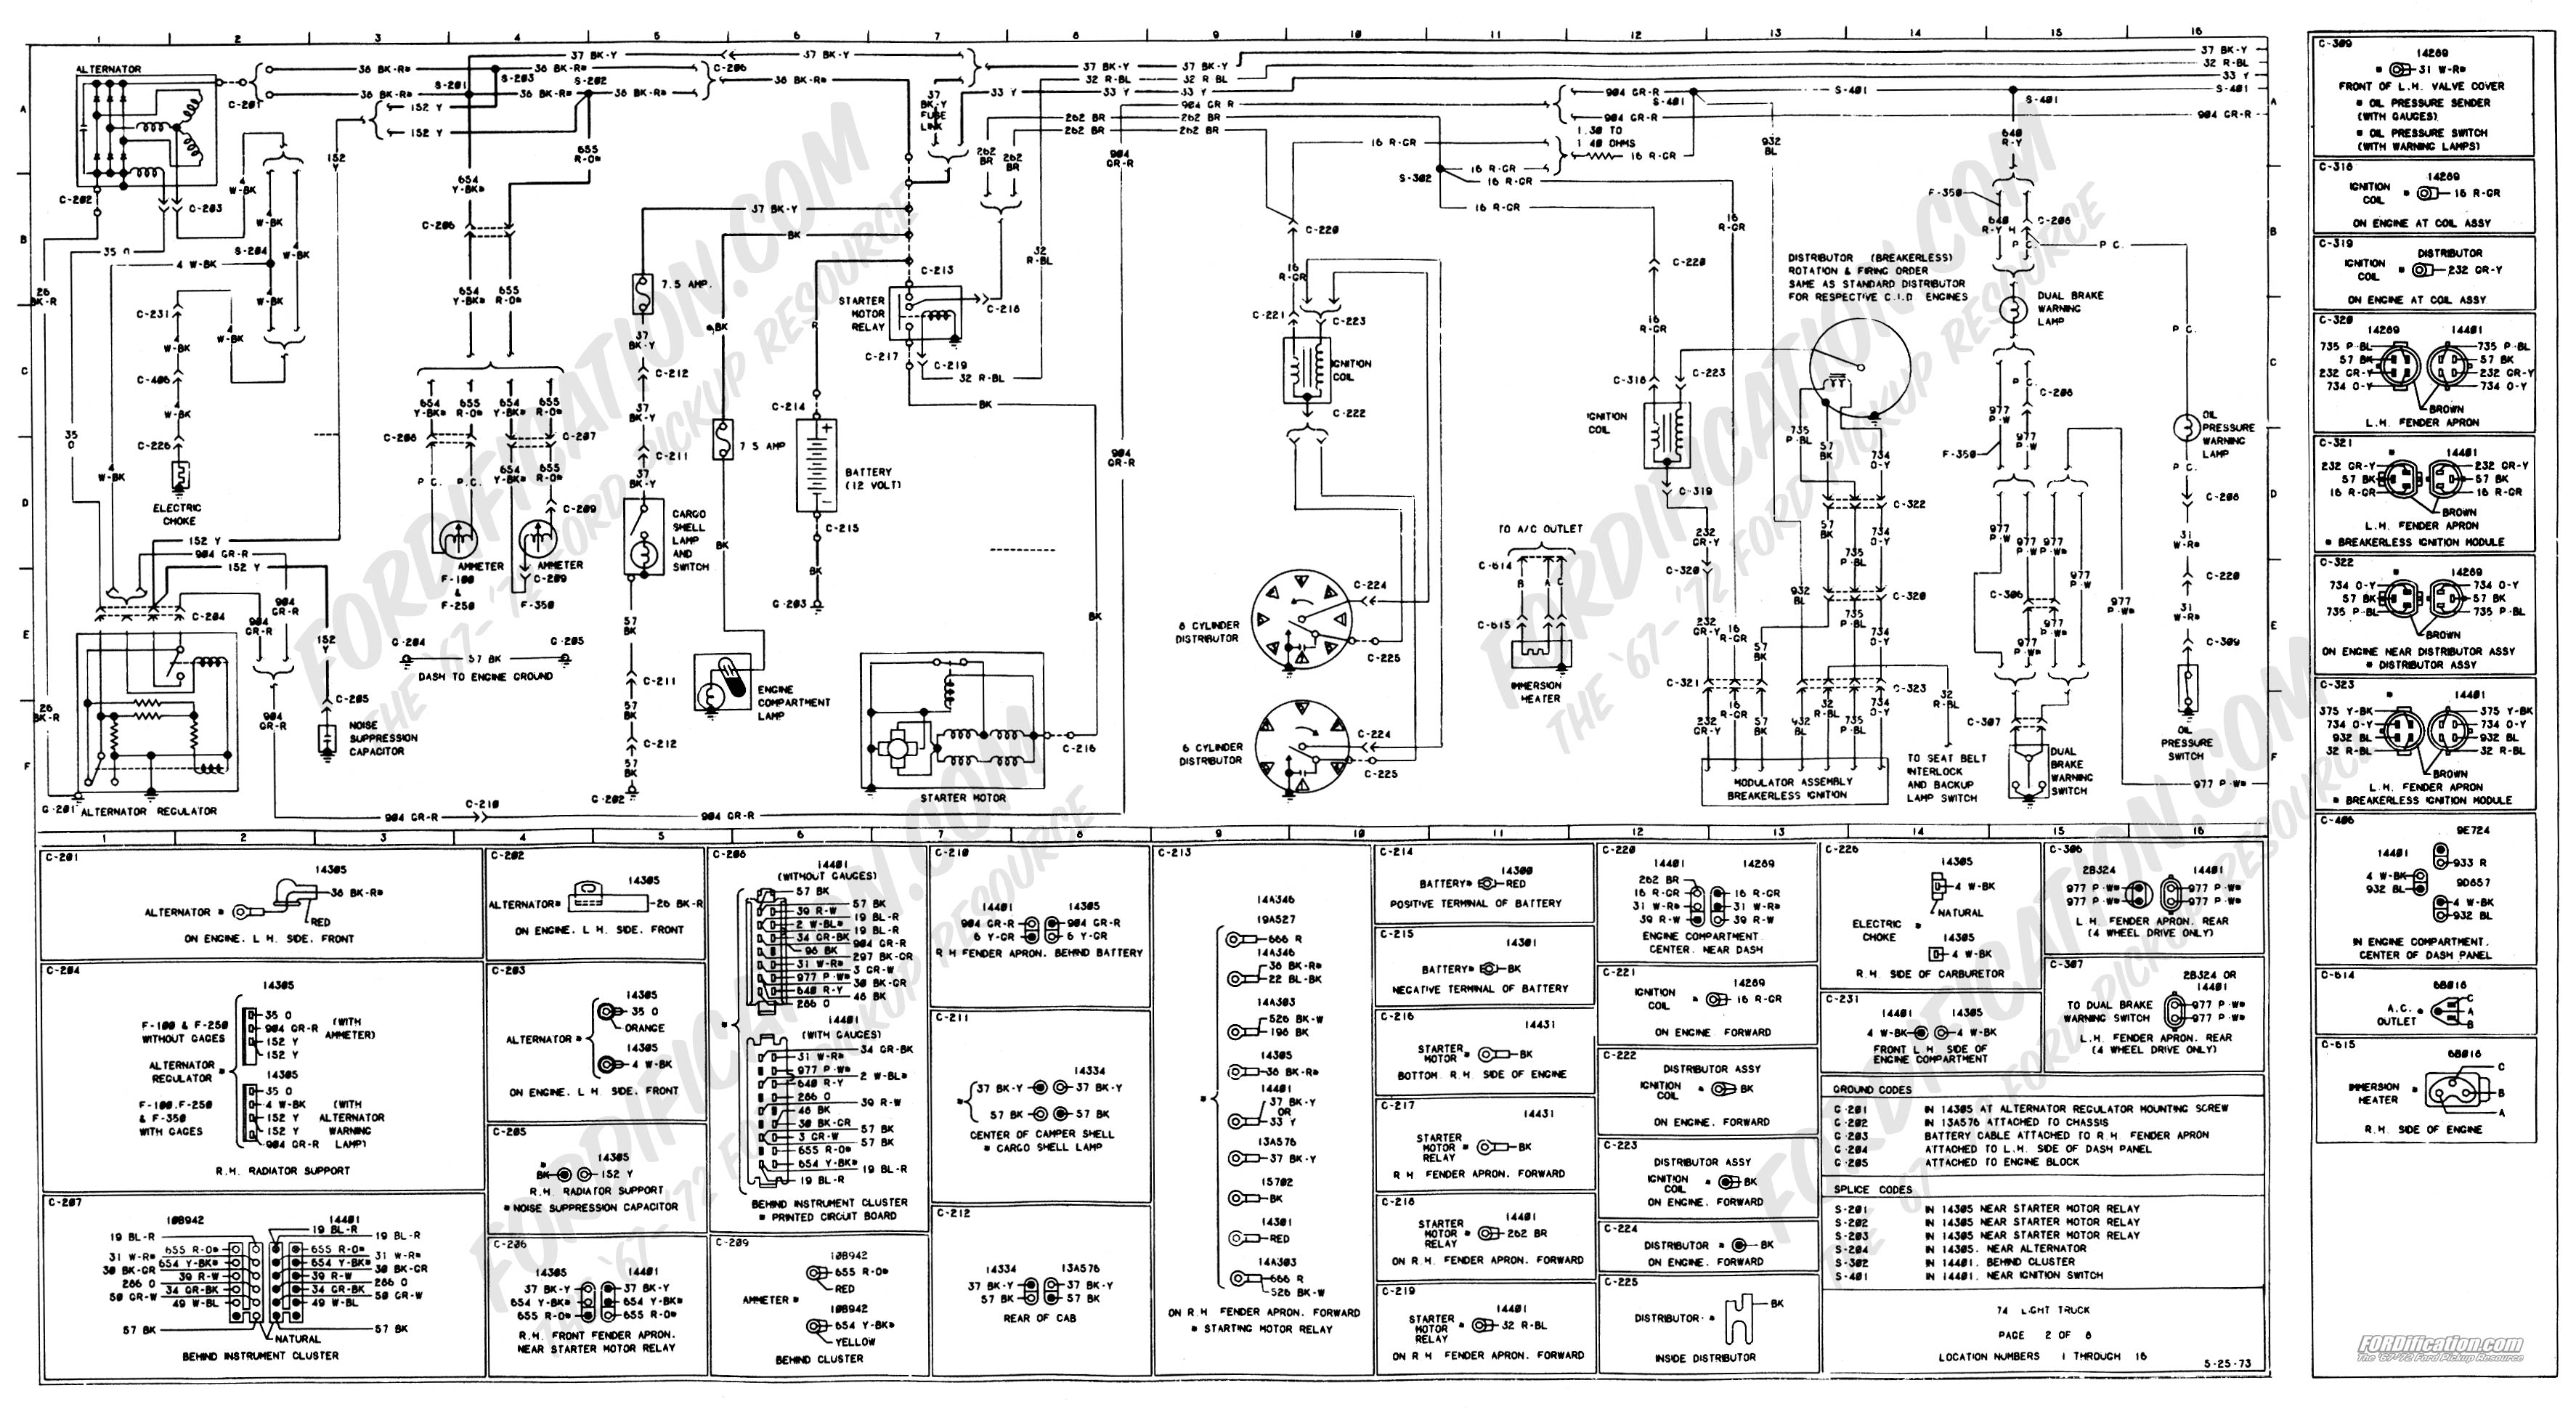 Ford F750 Wiring | Wiring Diagrams F Wiring Diagram on battery diagrams, electrical diagrams, lighting diagrams, motor diagrams, gmc fuse box diagrams, switch diagrams, electronic circuit diagrams, troubleshooting diagrams, series and parallel circuits diagrams, hvac diagrams, internet of things diagrams, friendship bracelet diagrams, led circuit diagrams, pinout diagrams, engine diagrams, transformer diagrams, sincgars radio configurations diagrams, smart car diagrams, honda motorcycle repair diagrams,